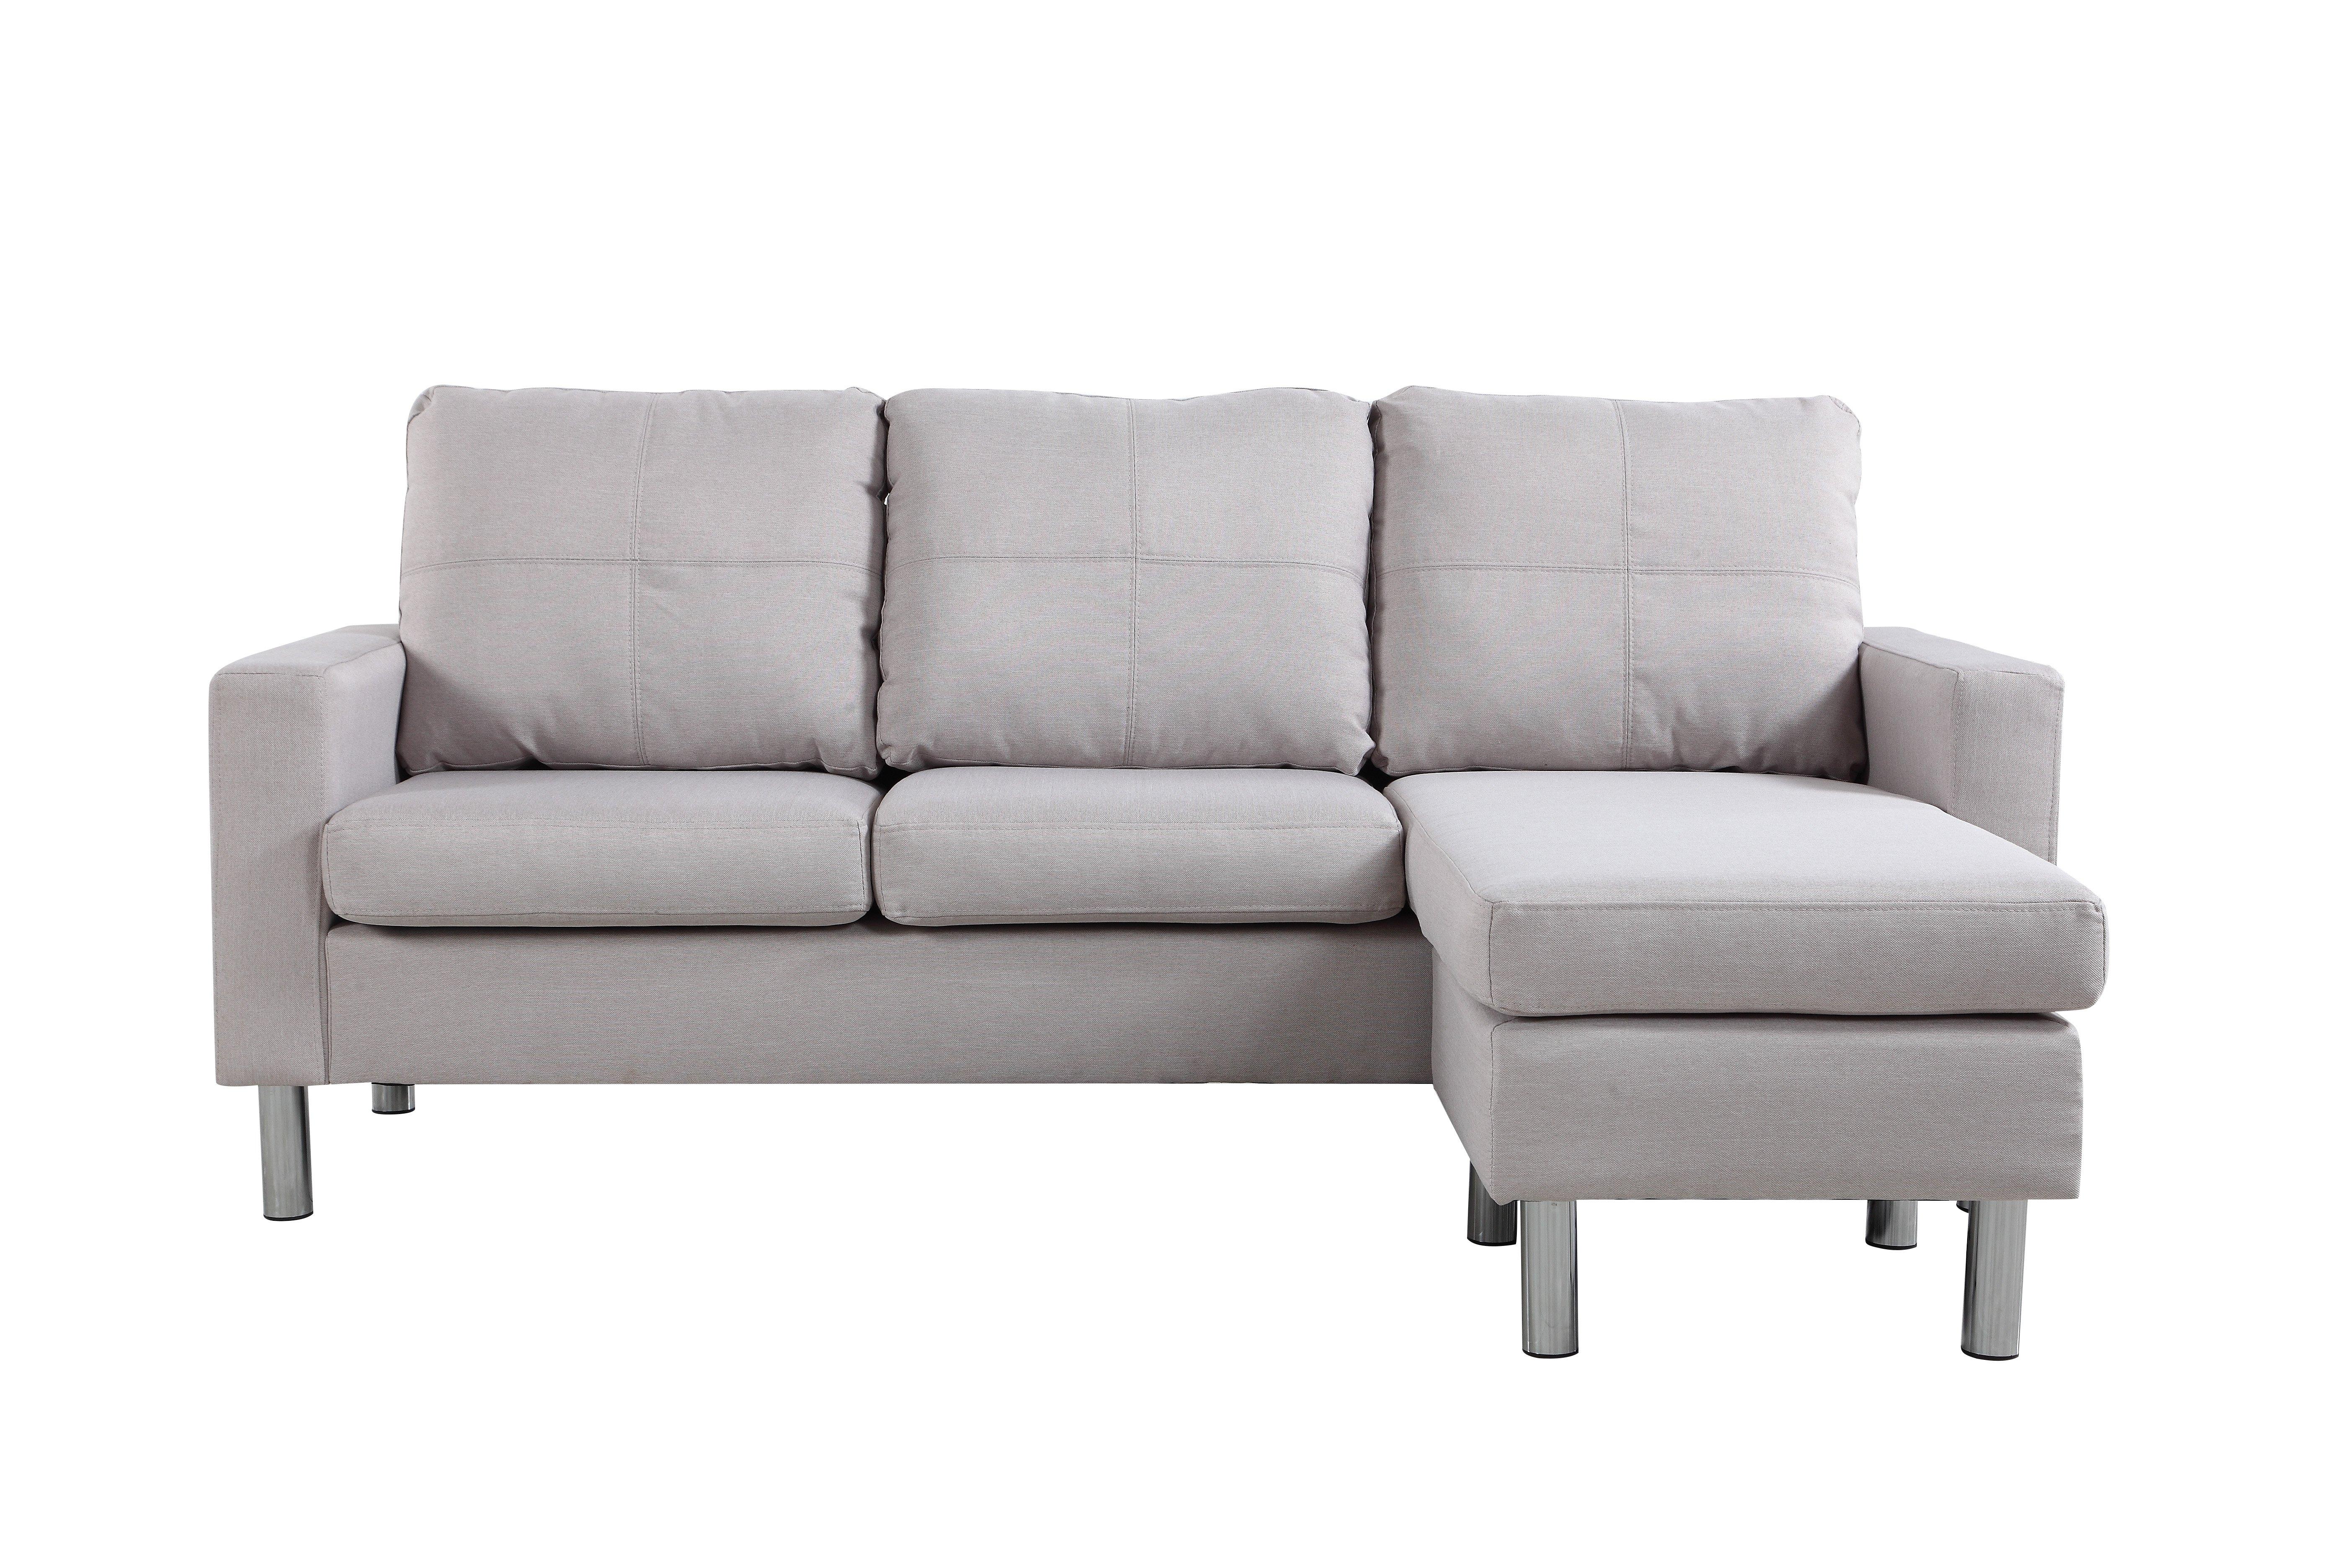 Small Living Room Sectional Small Space Sectional Sofa